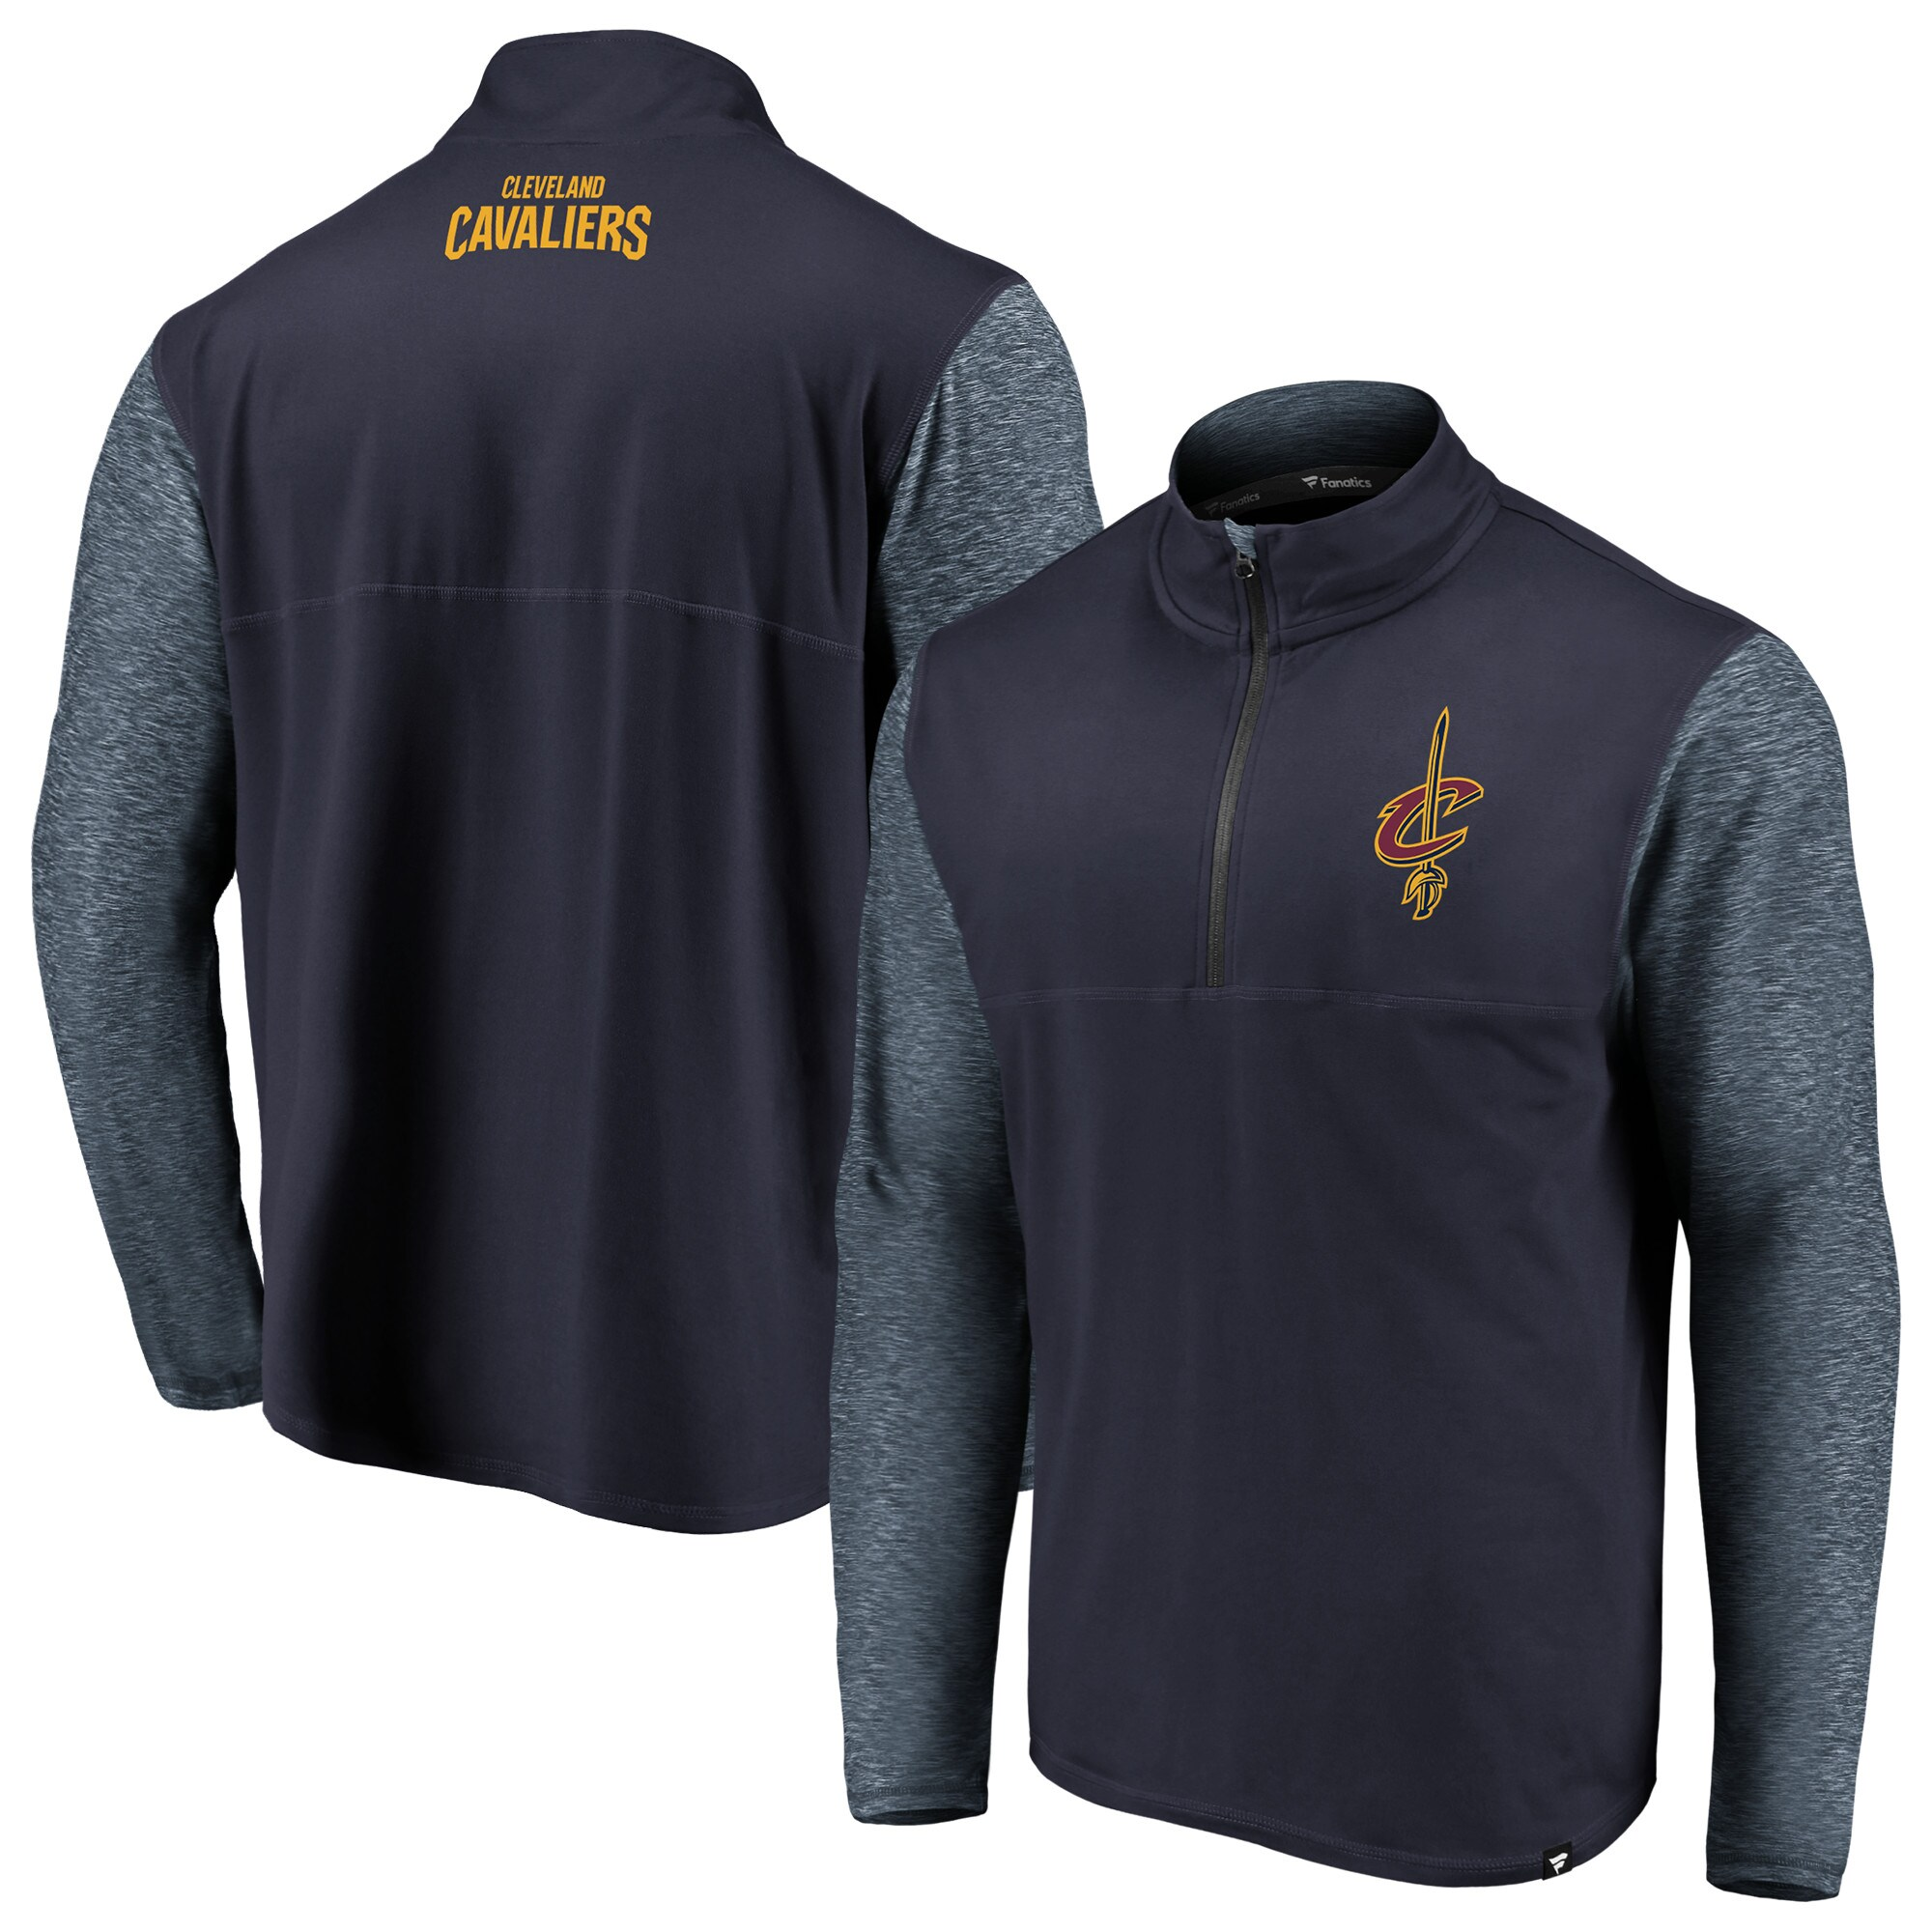 Cleveland Cavaliers Fanatics Branded Big & Tall Made to Move Static Performance Quarter-Zip Pullover Jacket - Navy/Heathered Navy